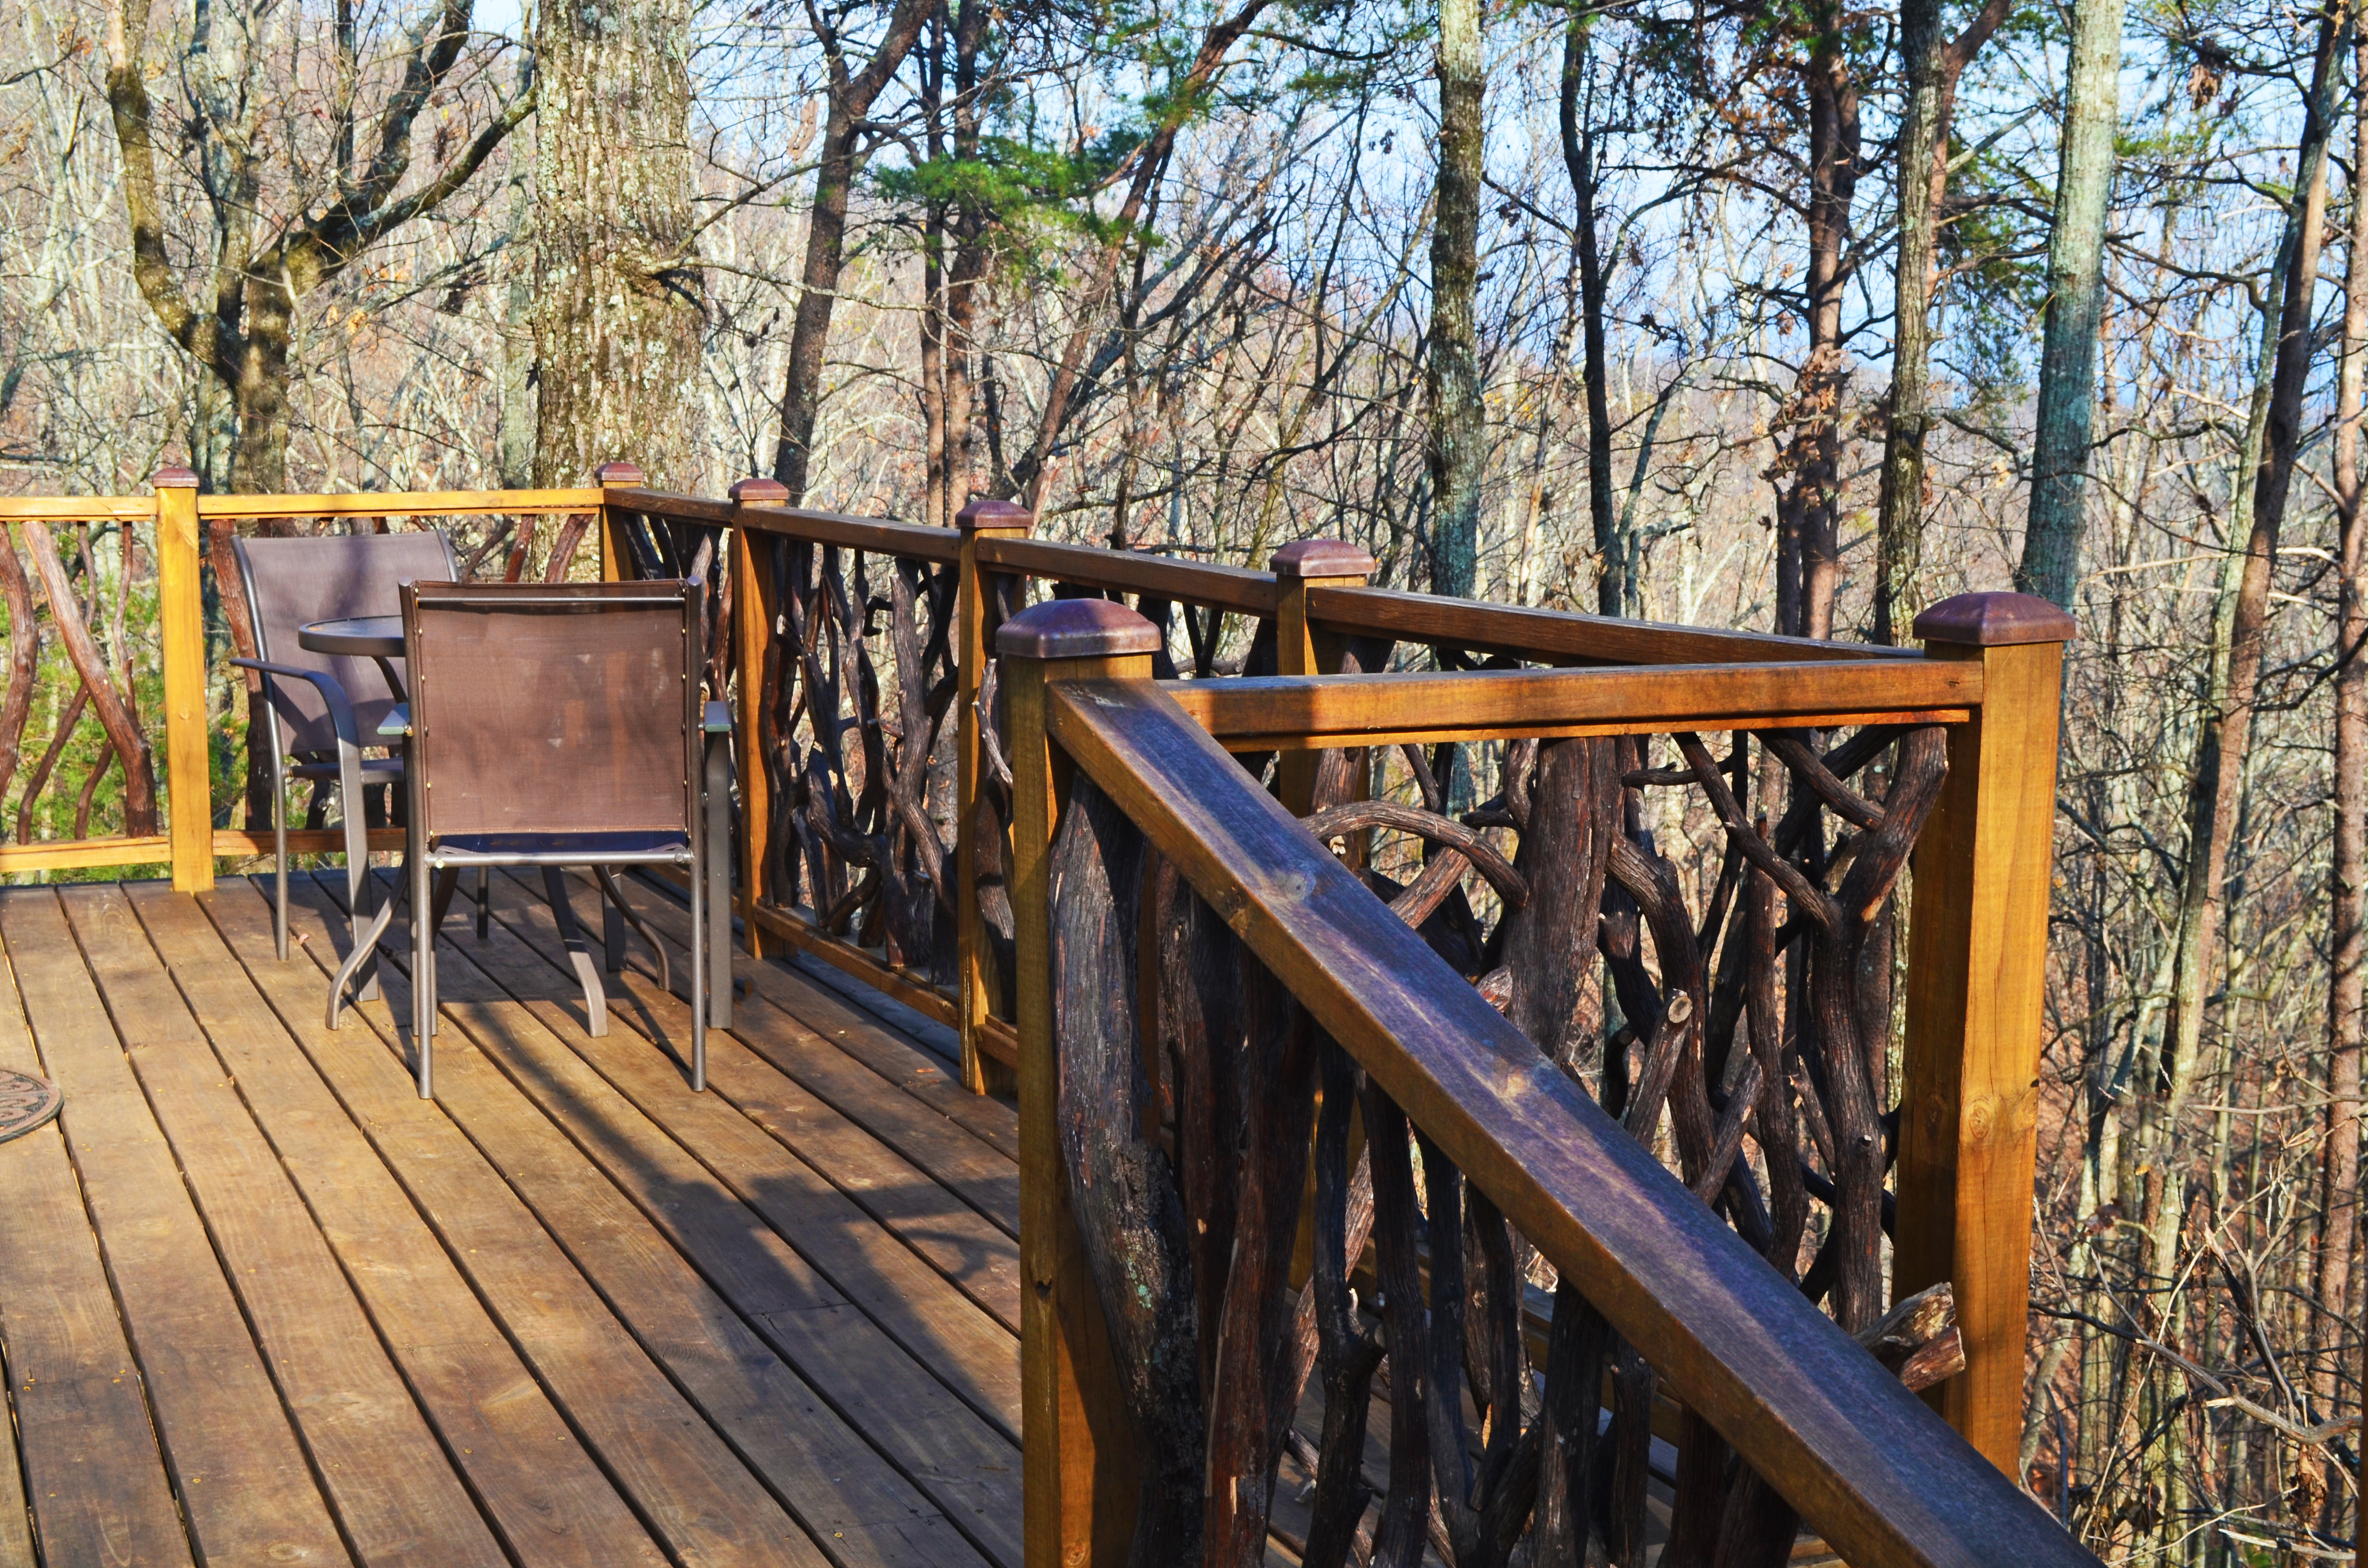 s cabins hostel by hammock photograph the dahlonega saints north georgias sutherland hiker is robert in ga operated near georgia